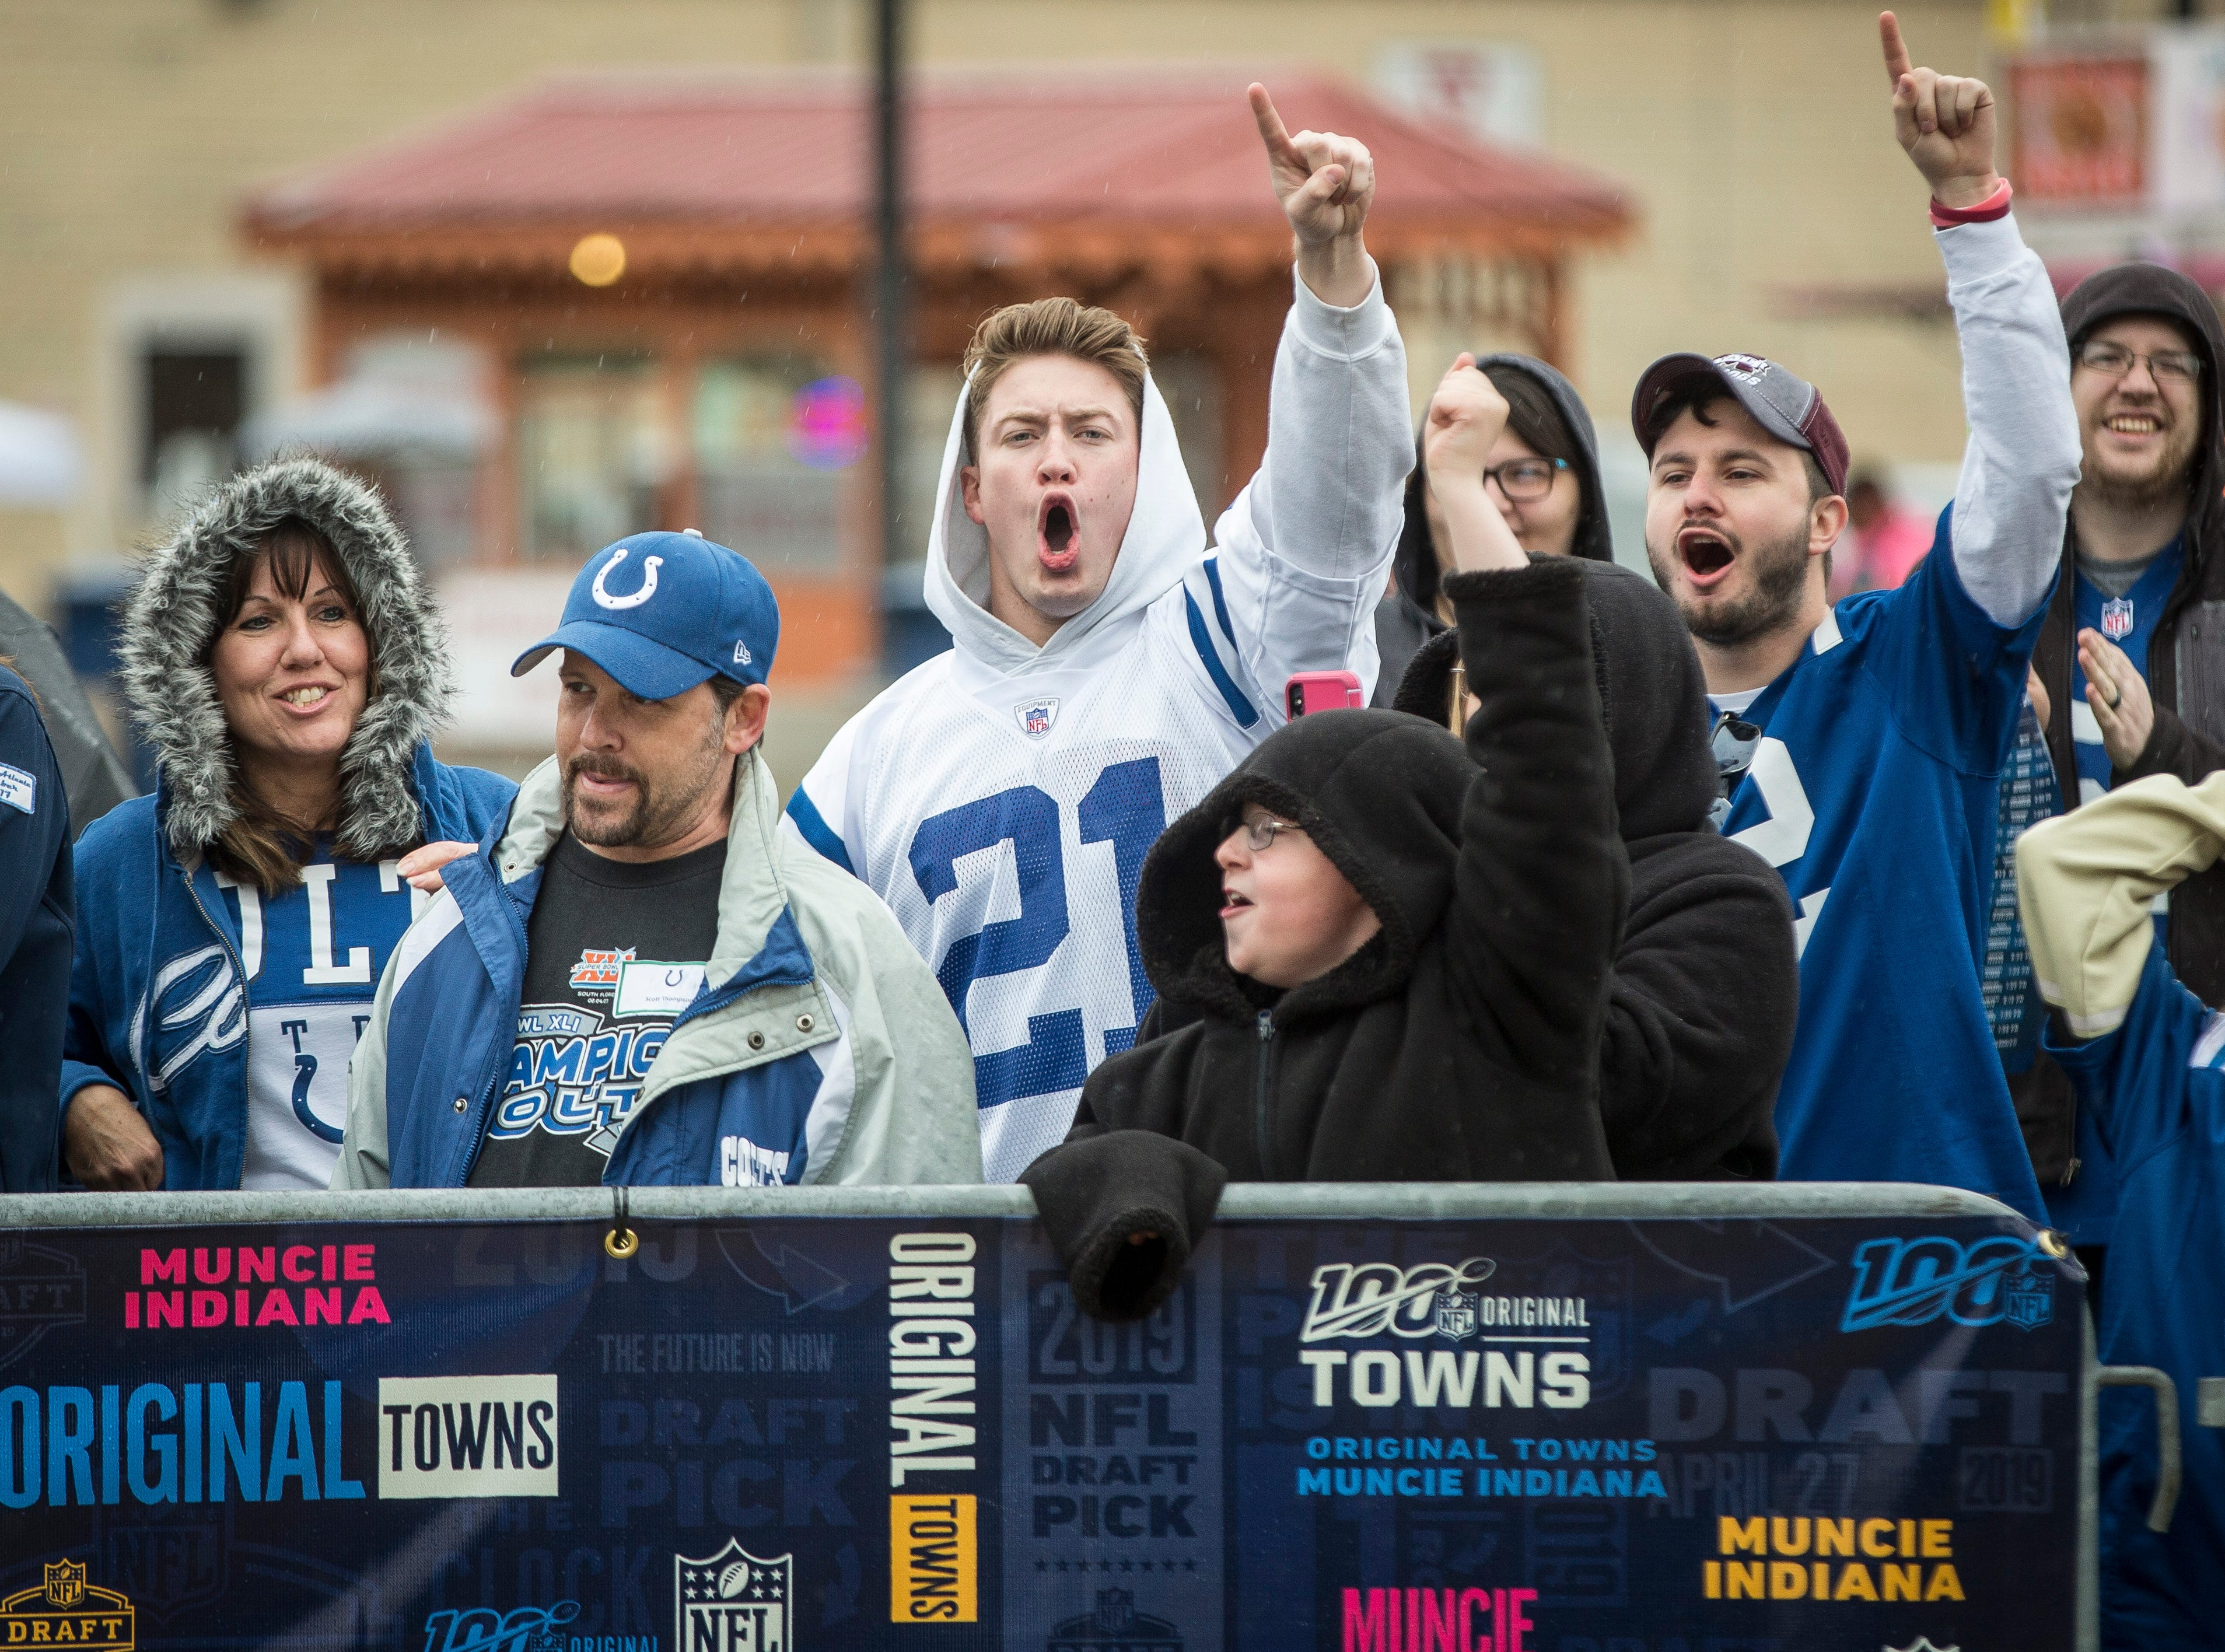 Fans gathered along a fence to be part of the live broadcast for the sixth round draft pick at Canan Commons. Two draft picks were made in Muncie. The Colts announced their pick, Gerri Green, and another announcement for Baltimore was made as well.